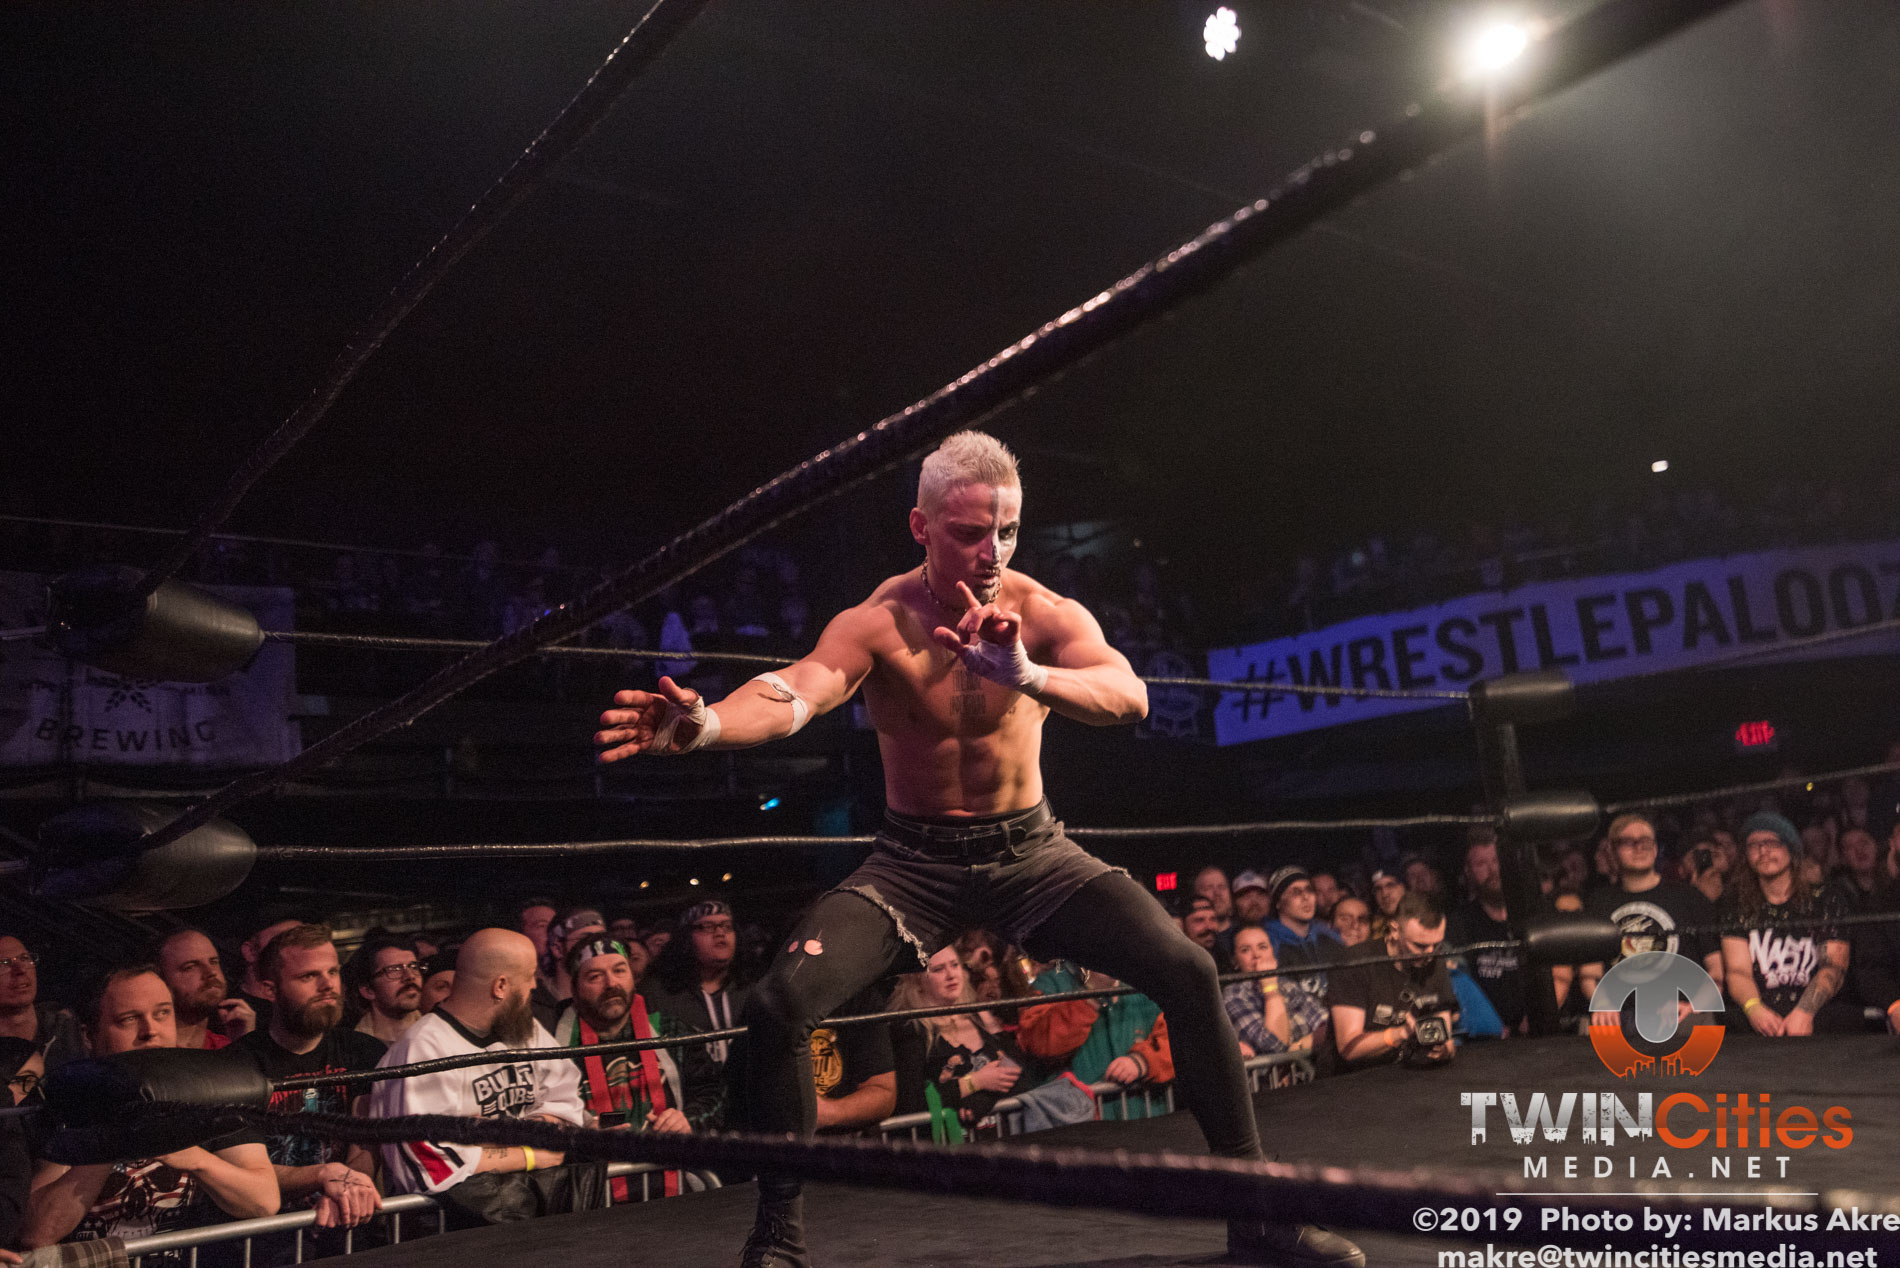 Wrestlepalooza - Match 5-4